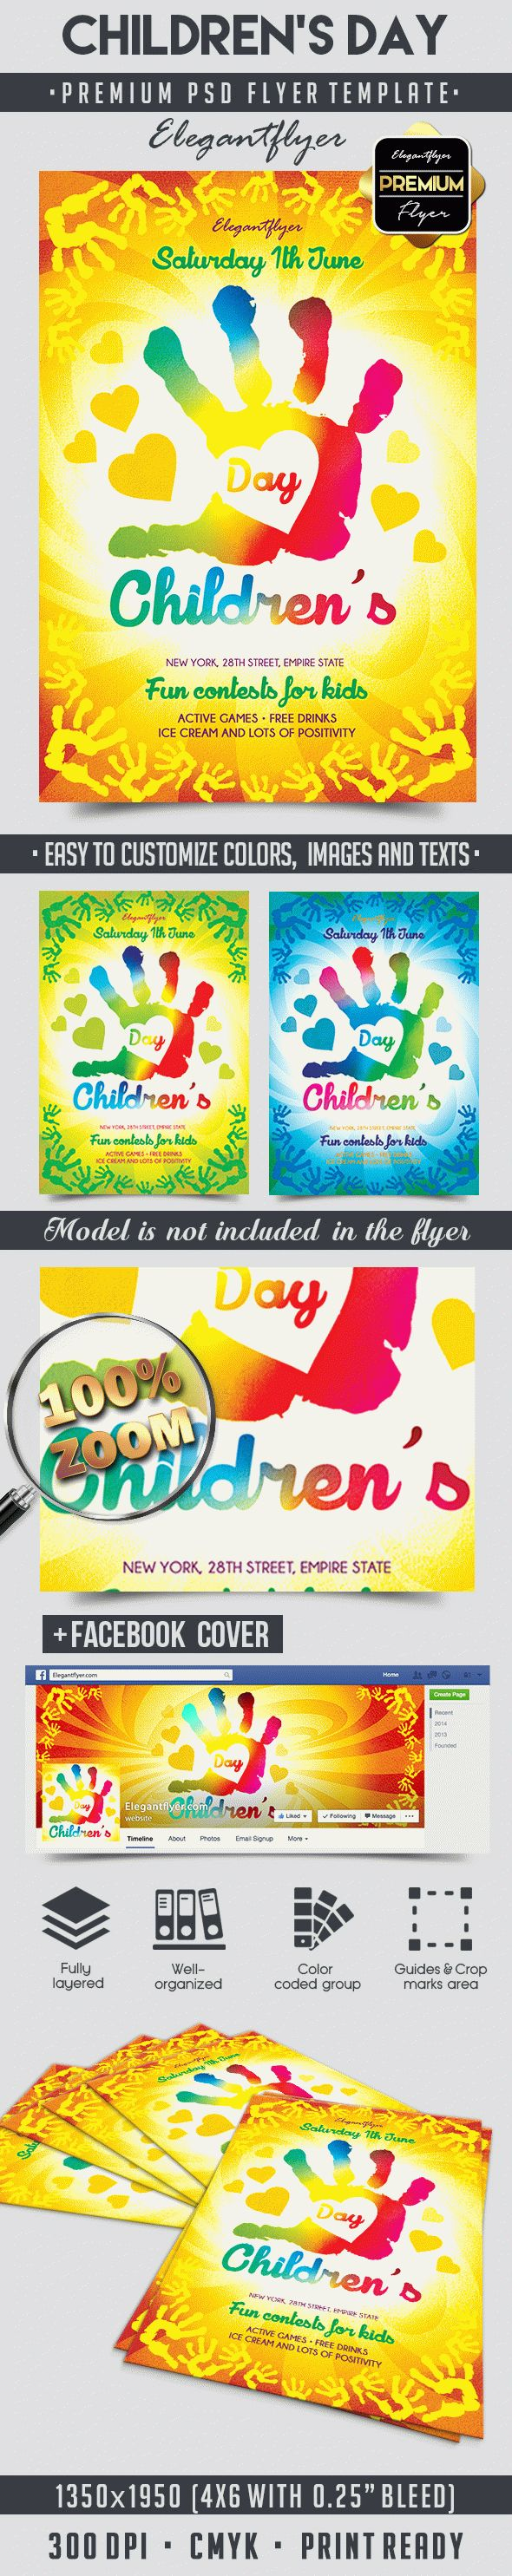 Children's Day – Flyer PSD Template + Facebook Cover